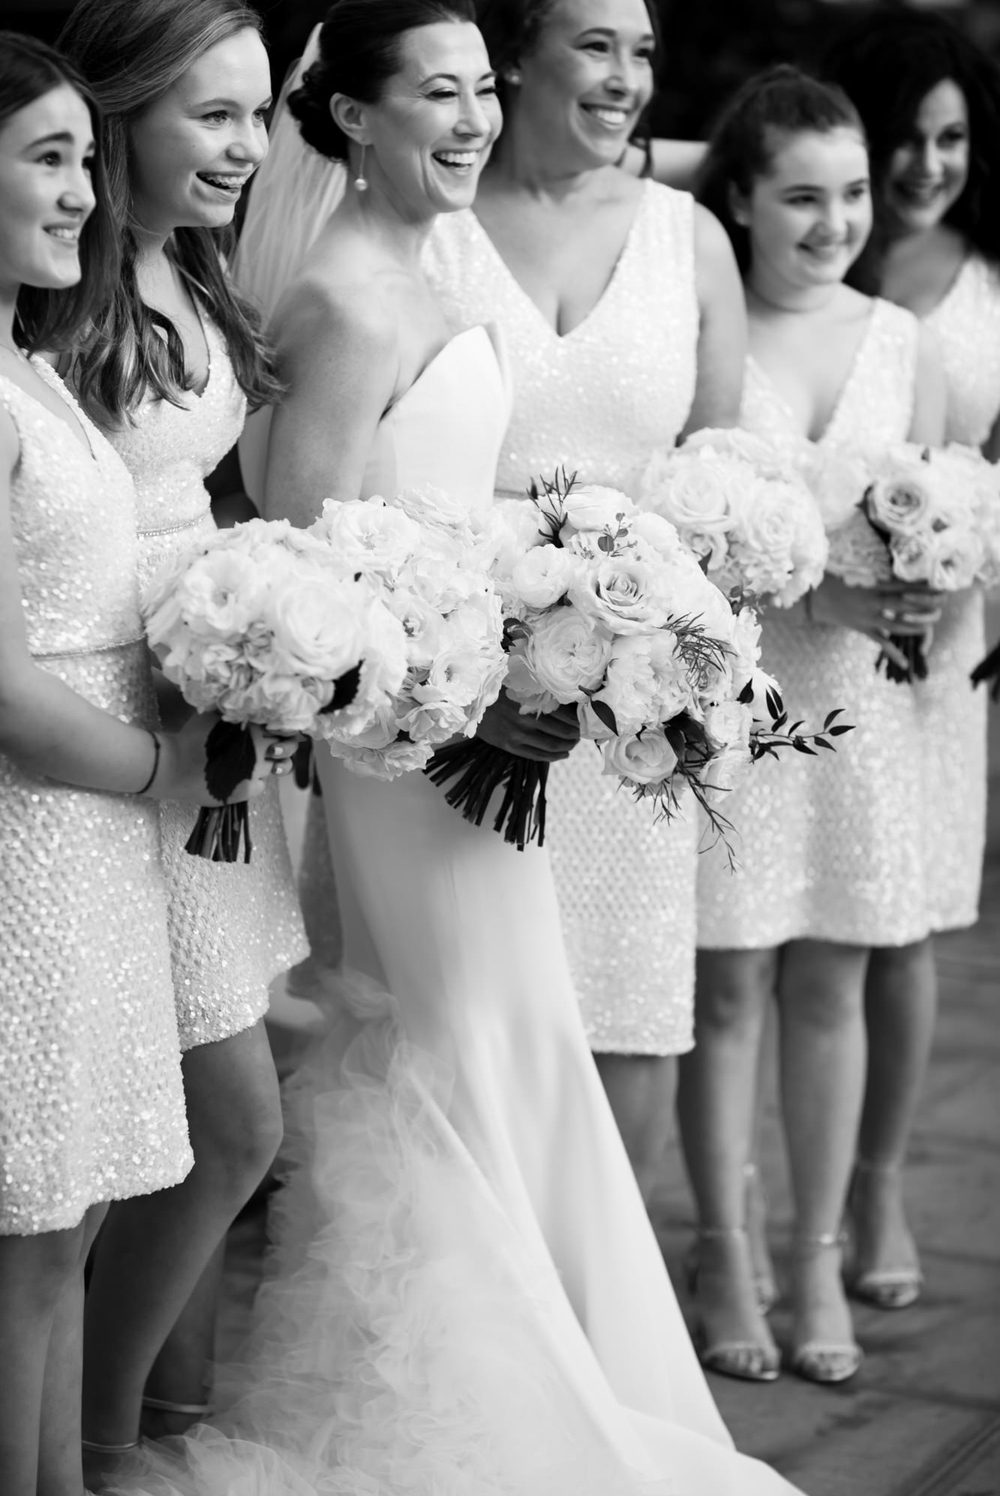 bride-with-bridesmaids-and-white-bouquets